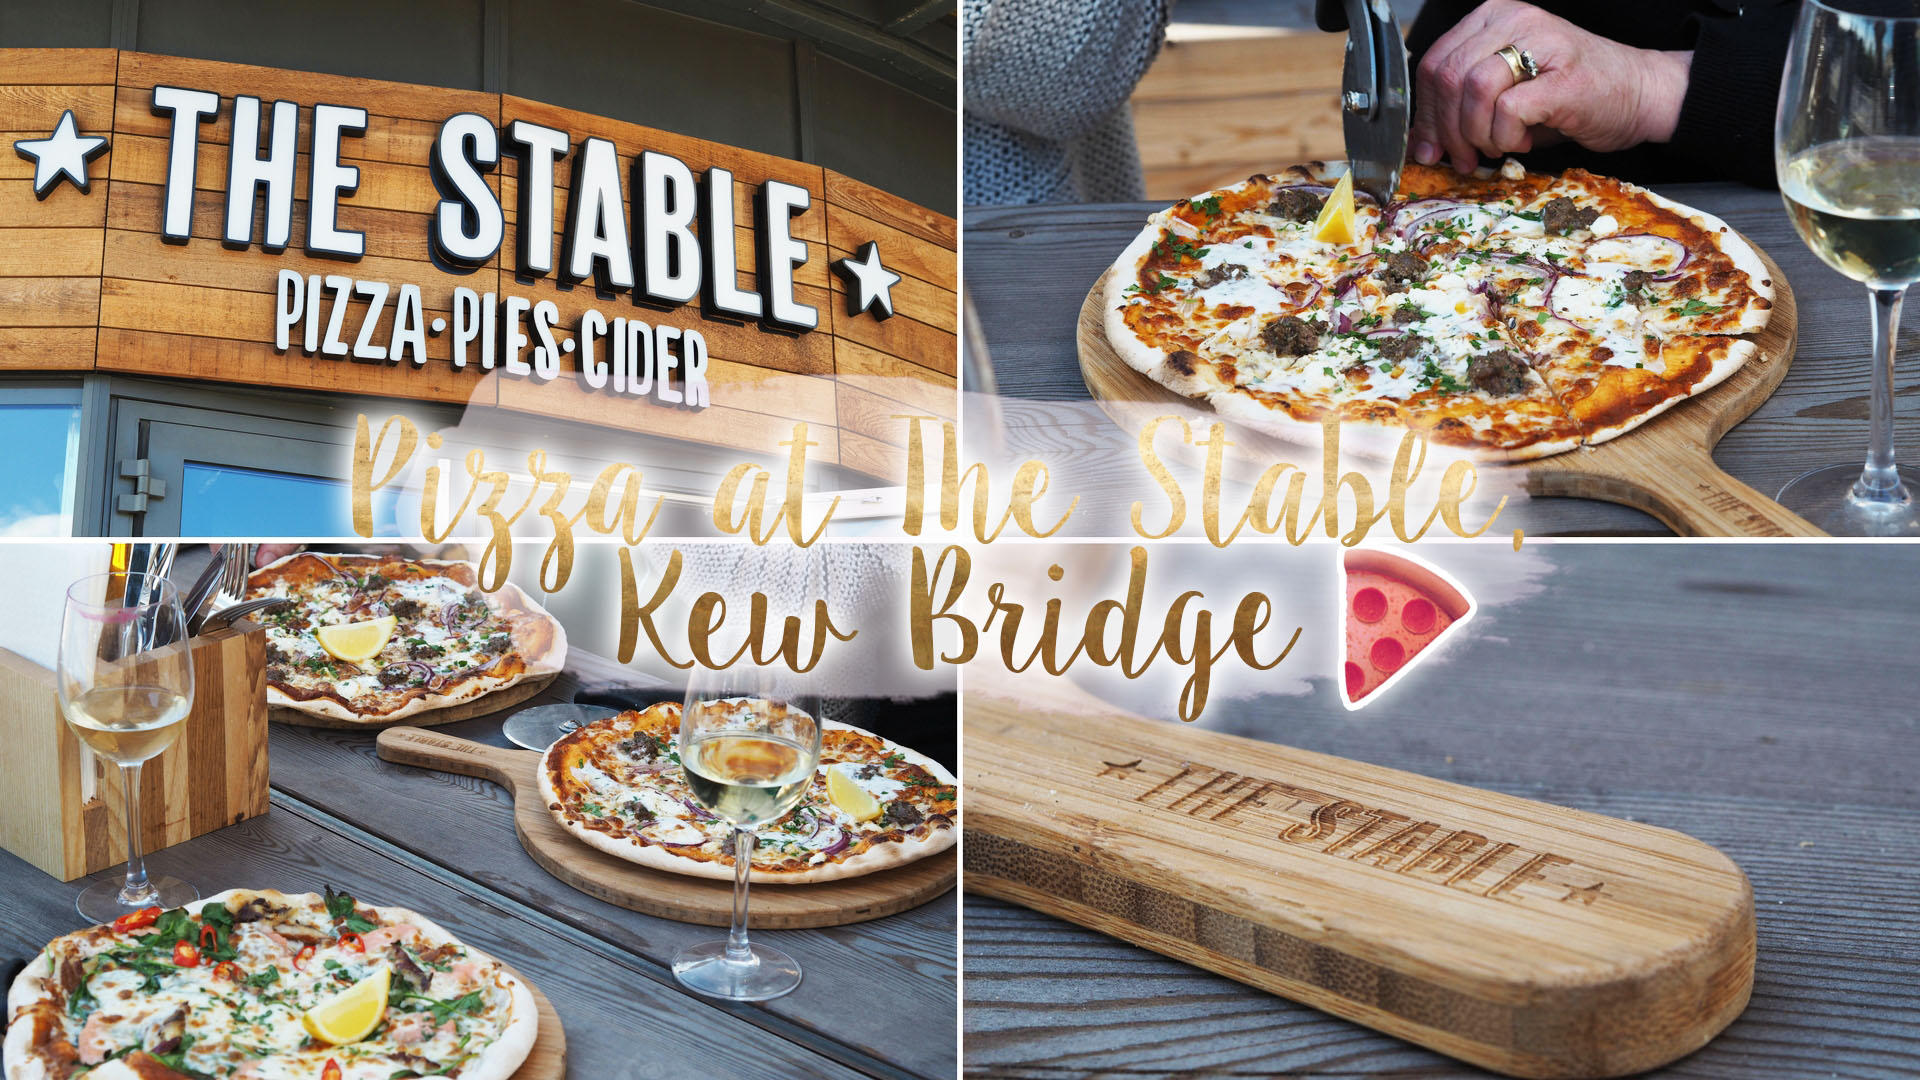 The Stable - Pizza, Pies and Cider, Kew Bridge || Food & Drink